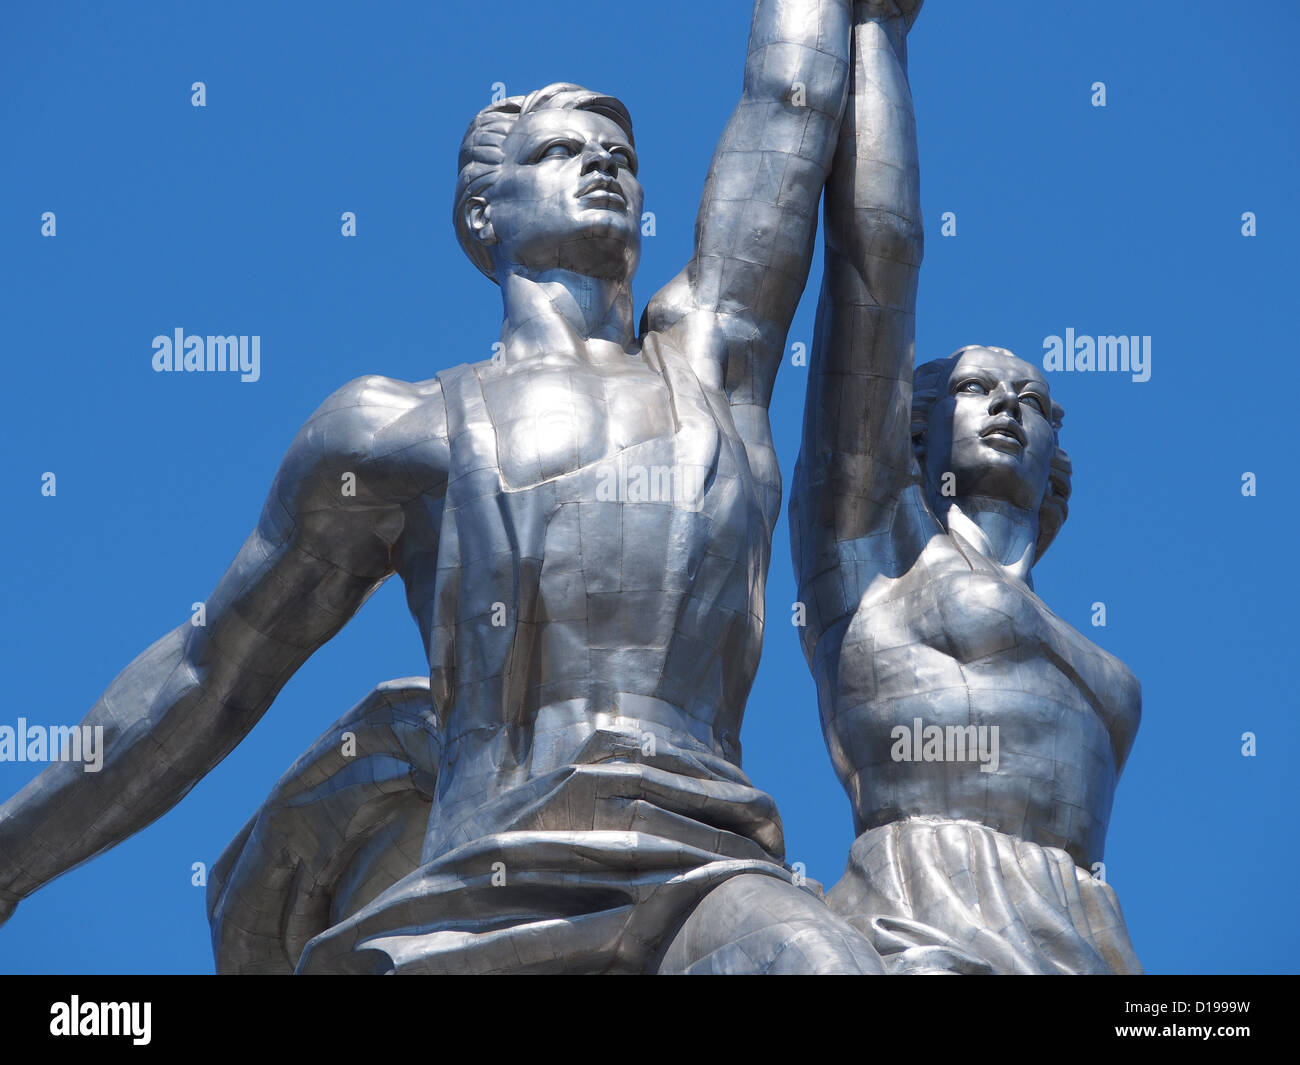 Sculpture 'Worker and Kolkhoz Woman' in Moscow, Russia - Stock Image